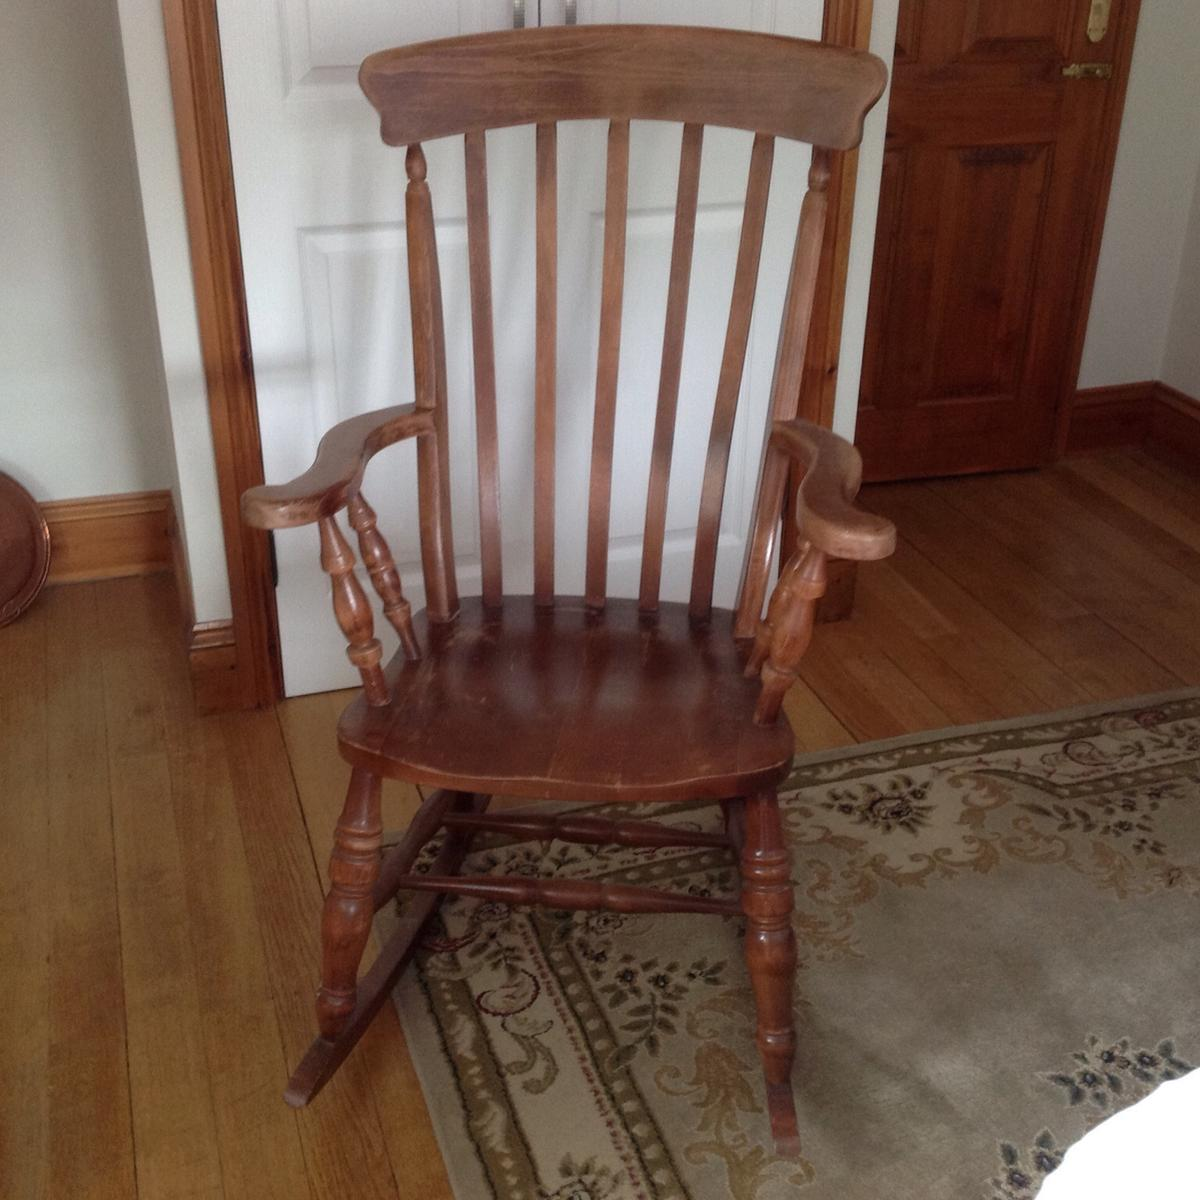 Astounding Large Wooden Rocking Chair Bralicious Painted Fabric Chair Ideas Braliciousco